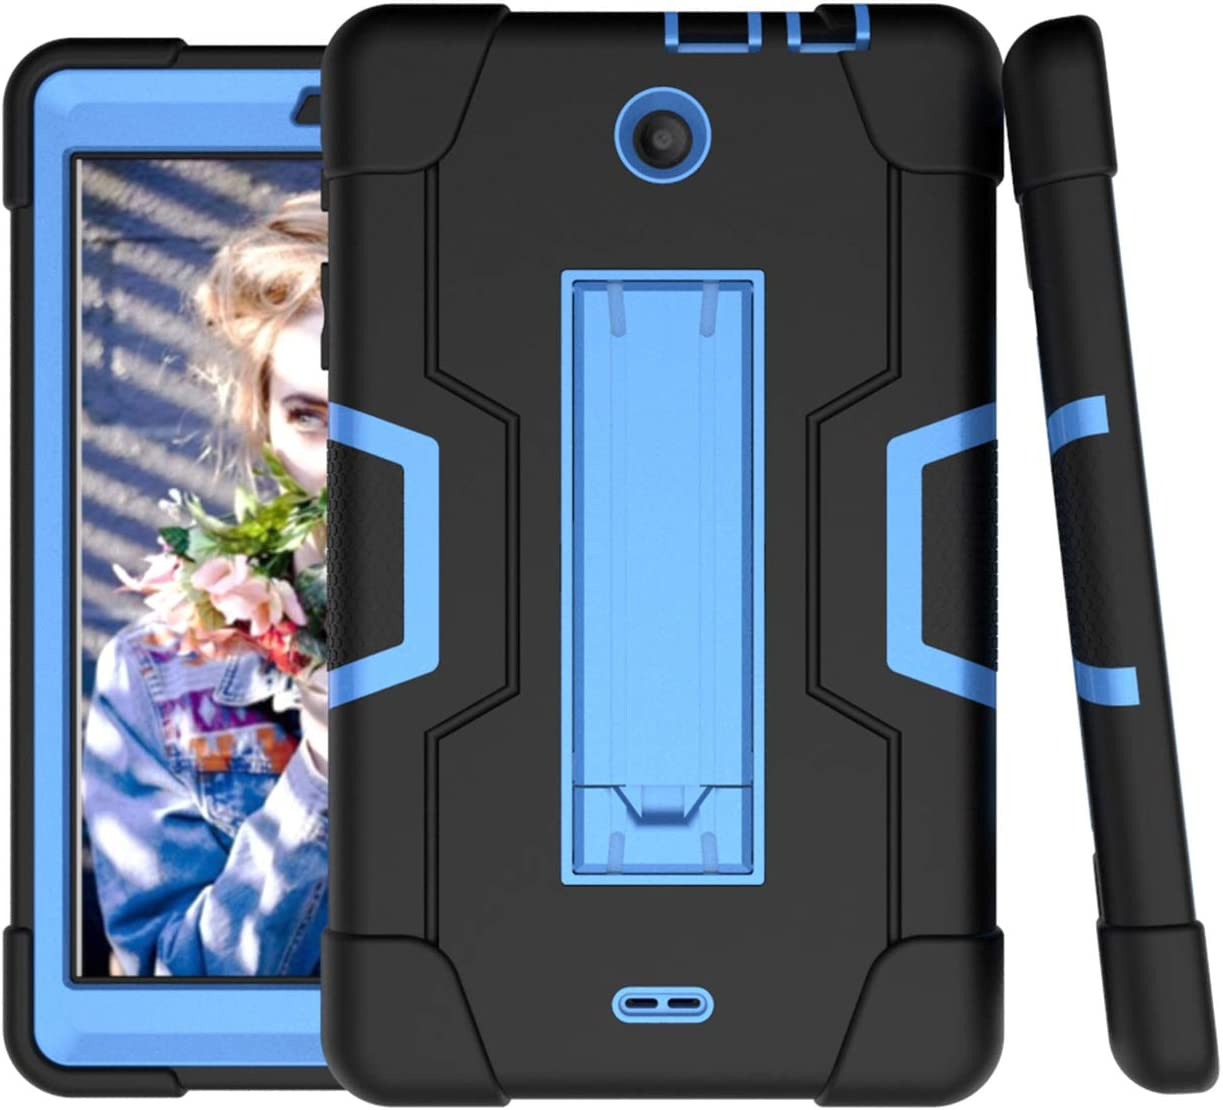 For Alcatel 3T 8.0 2018 Case,Alcatel Joy Tab 8.0 2019 Case,Cherrry Heavy Duty Rugged Hybrid Shockproof Full-Body Protective Case Build in Kickstand With Screen Protector Film/Stylus Pen (Black/Blue)